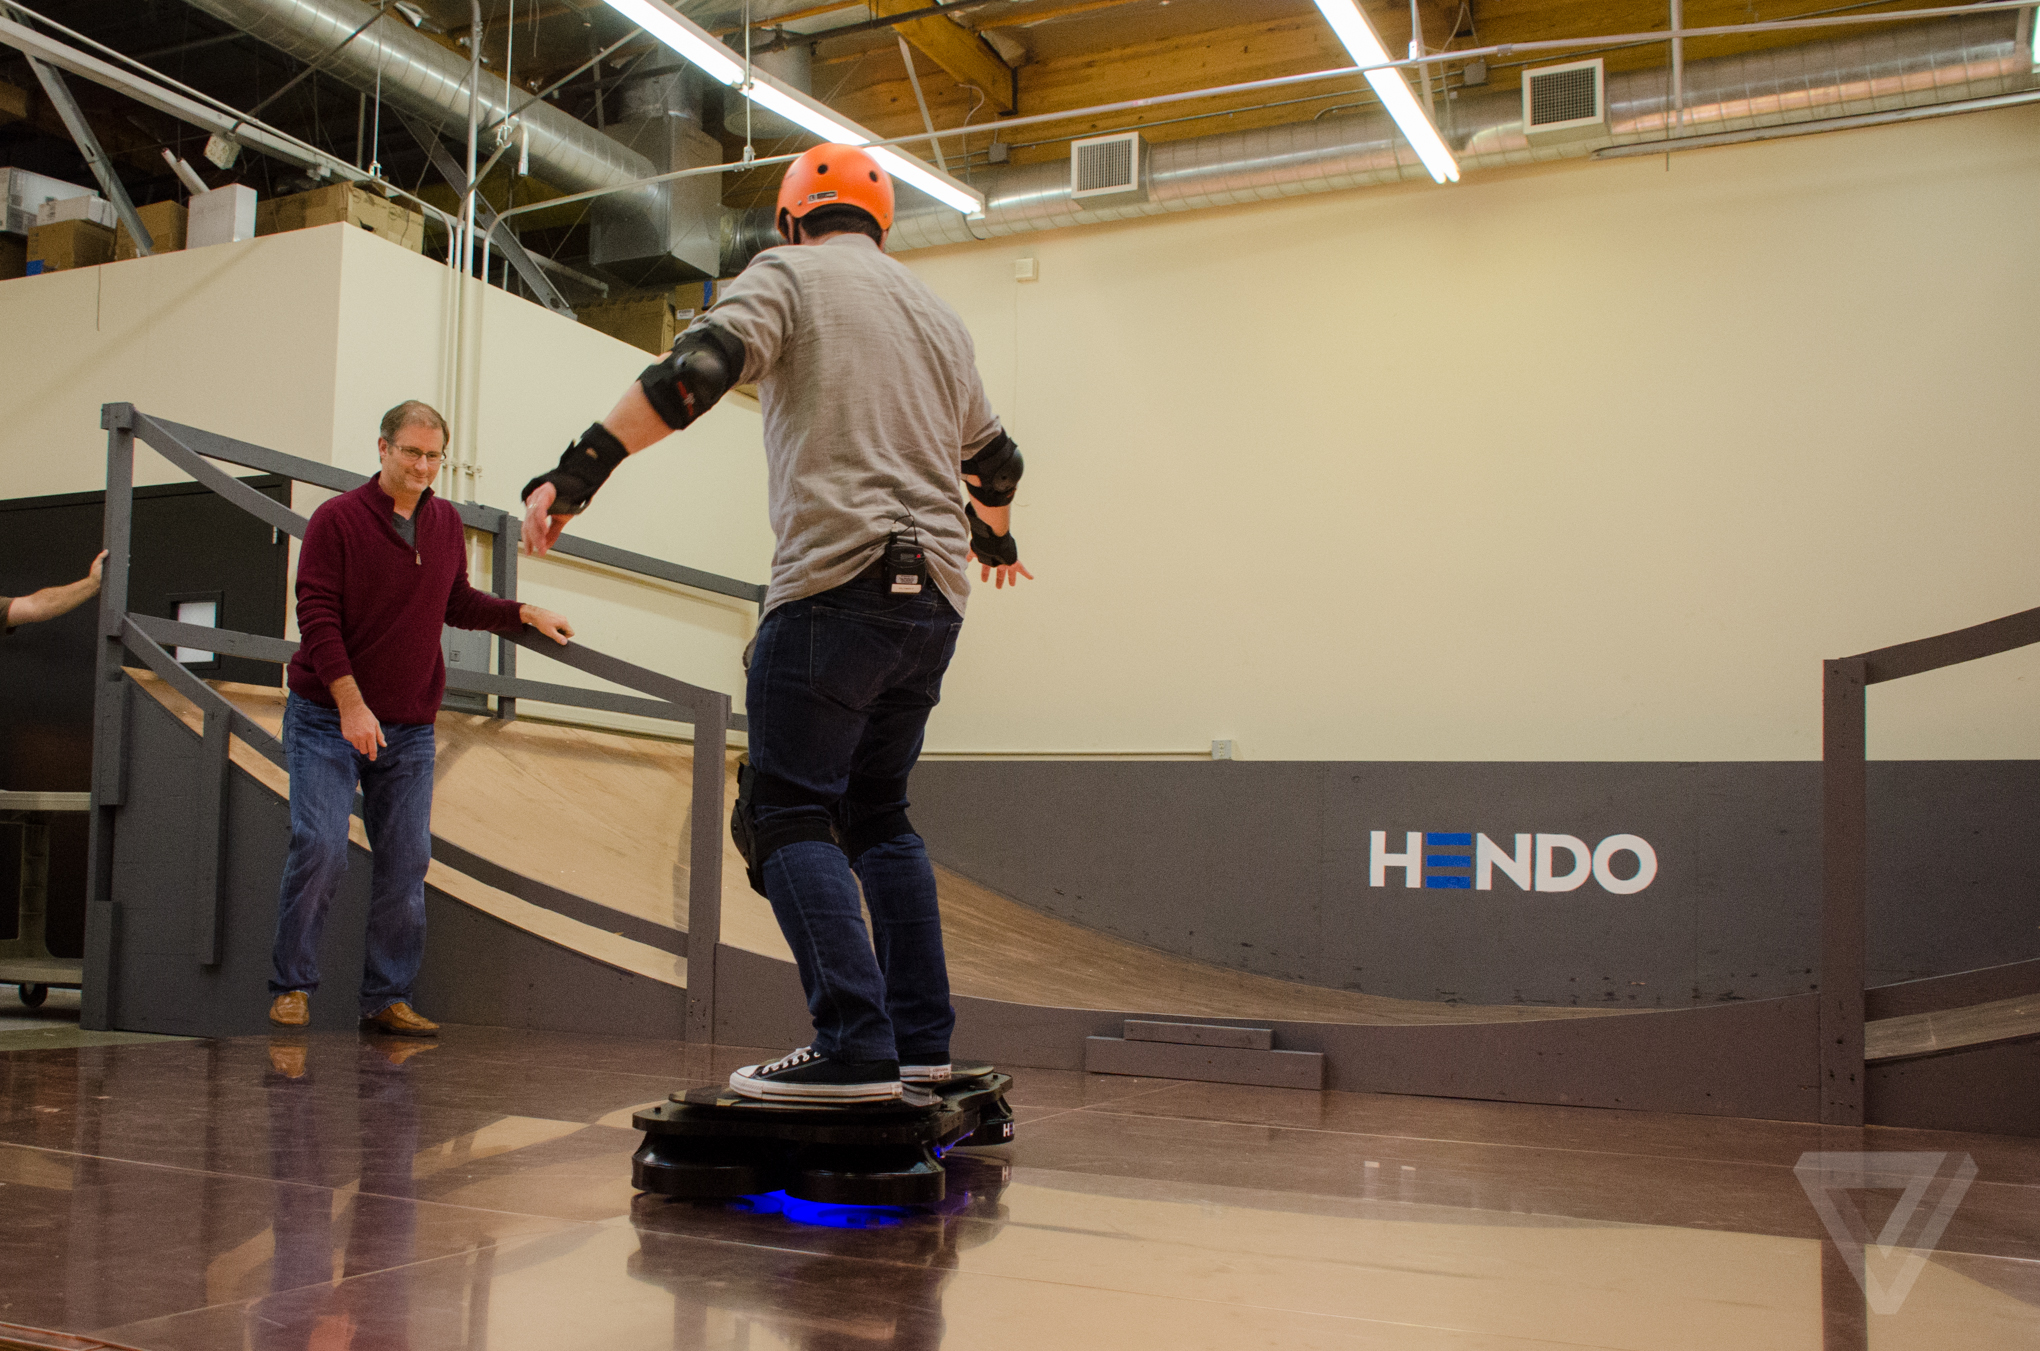 Here's what it's like to ride a real-life hoverboard